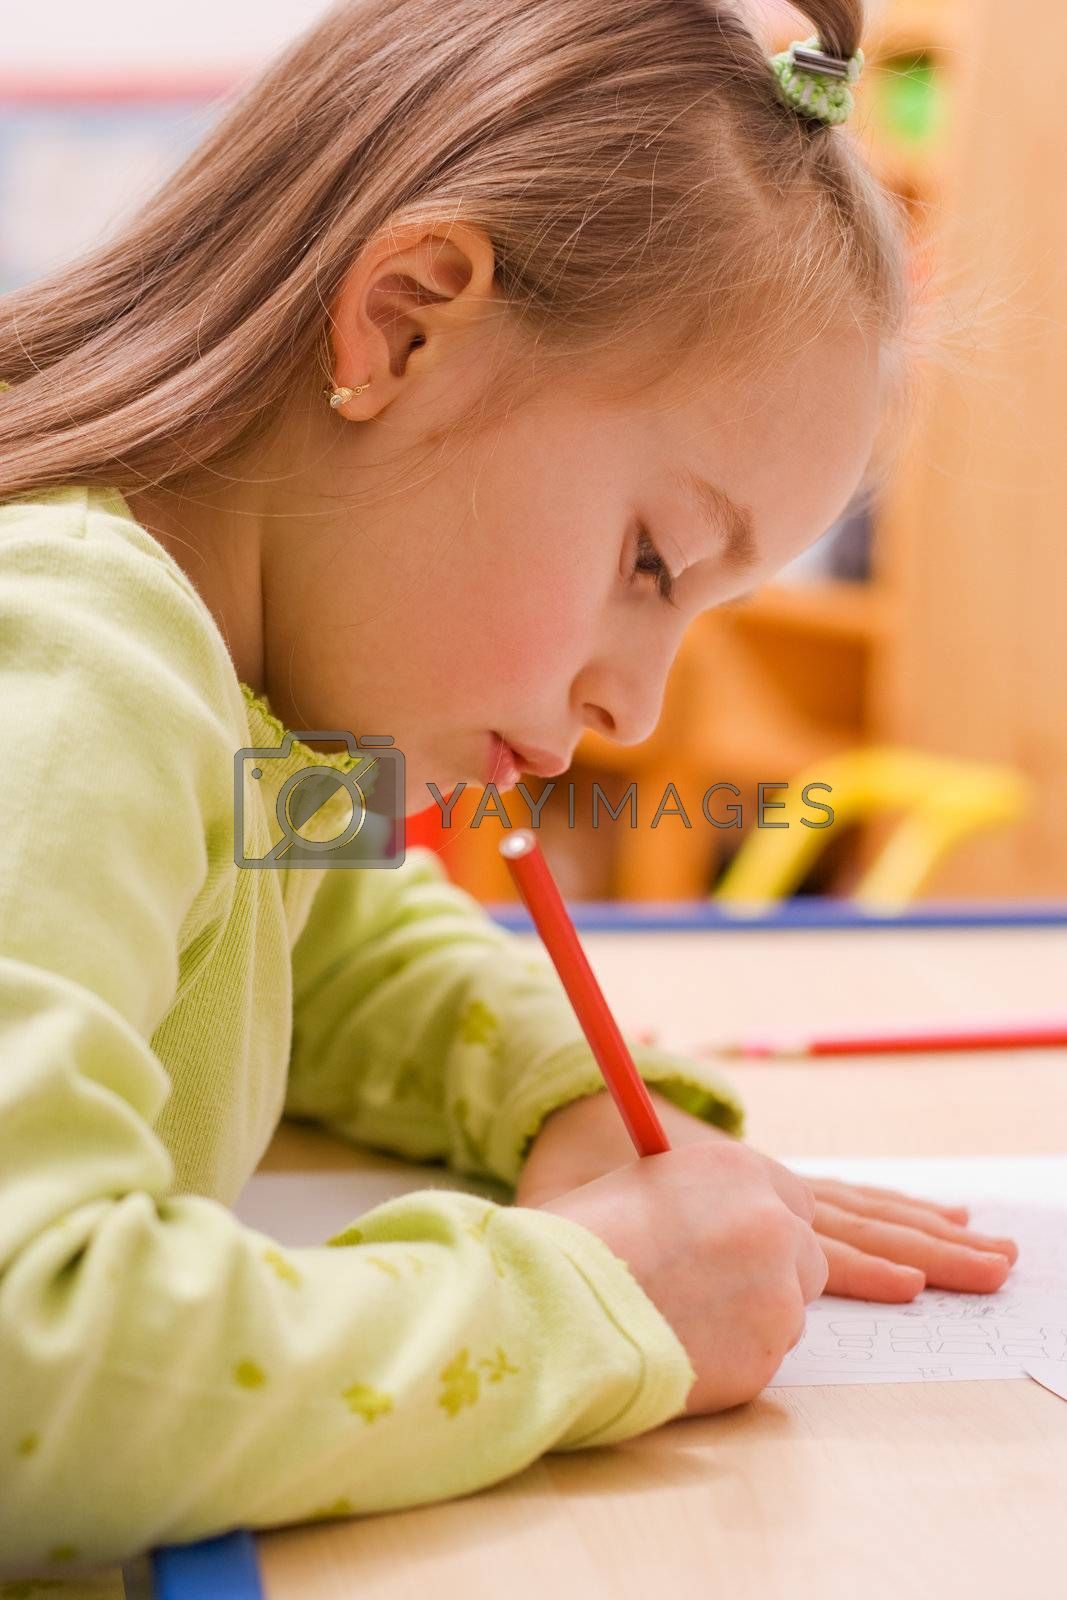 Pretty girl sitting and drawing with red pencil